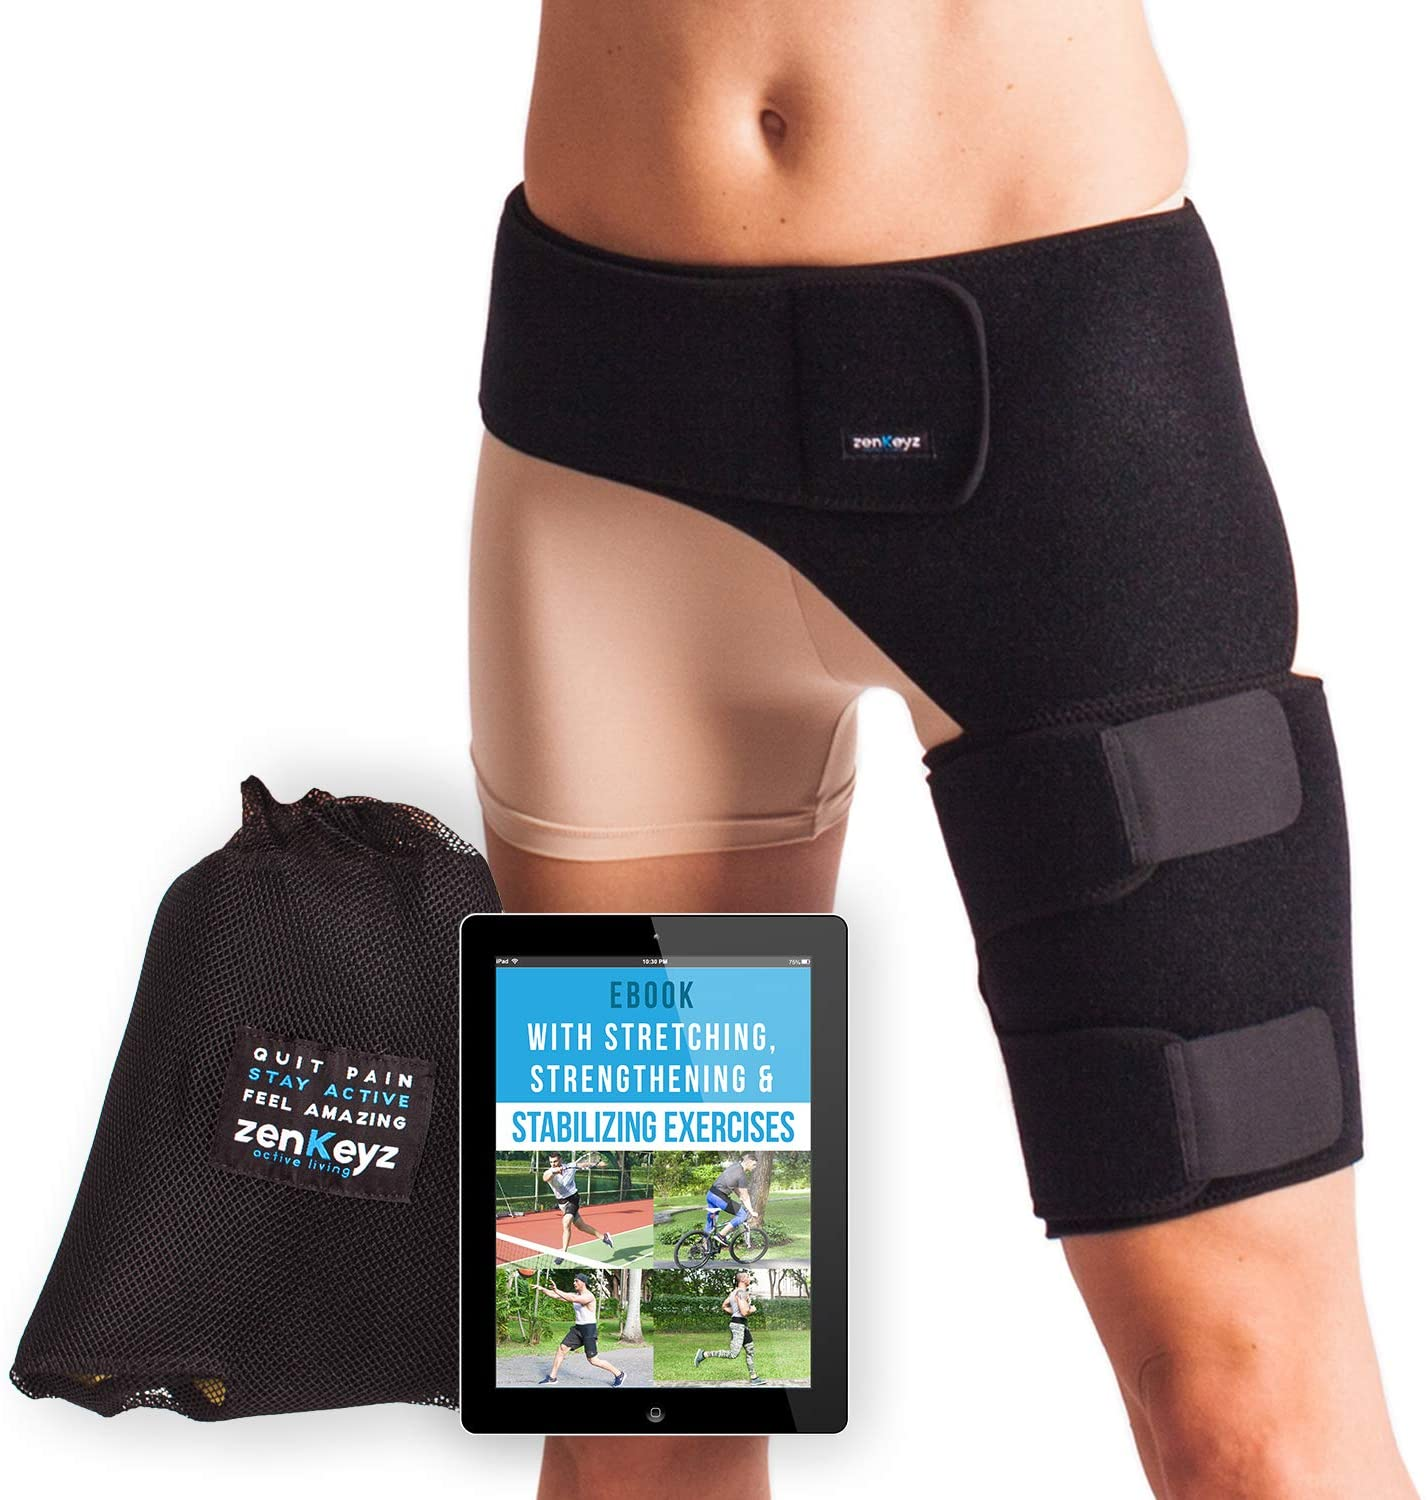 Groin Support and Hip Brace for Men & Women- Compression Wrap for Thigh Quad Hamstring Joints Sciatica Nerve Pain Relief Zenkeyz Leg Strap: Sports & Outdoors